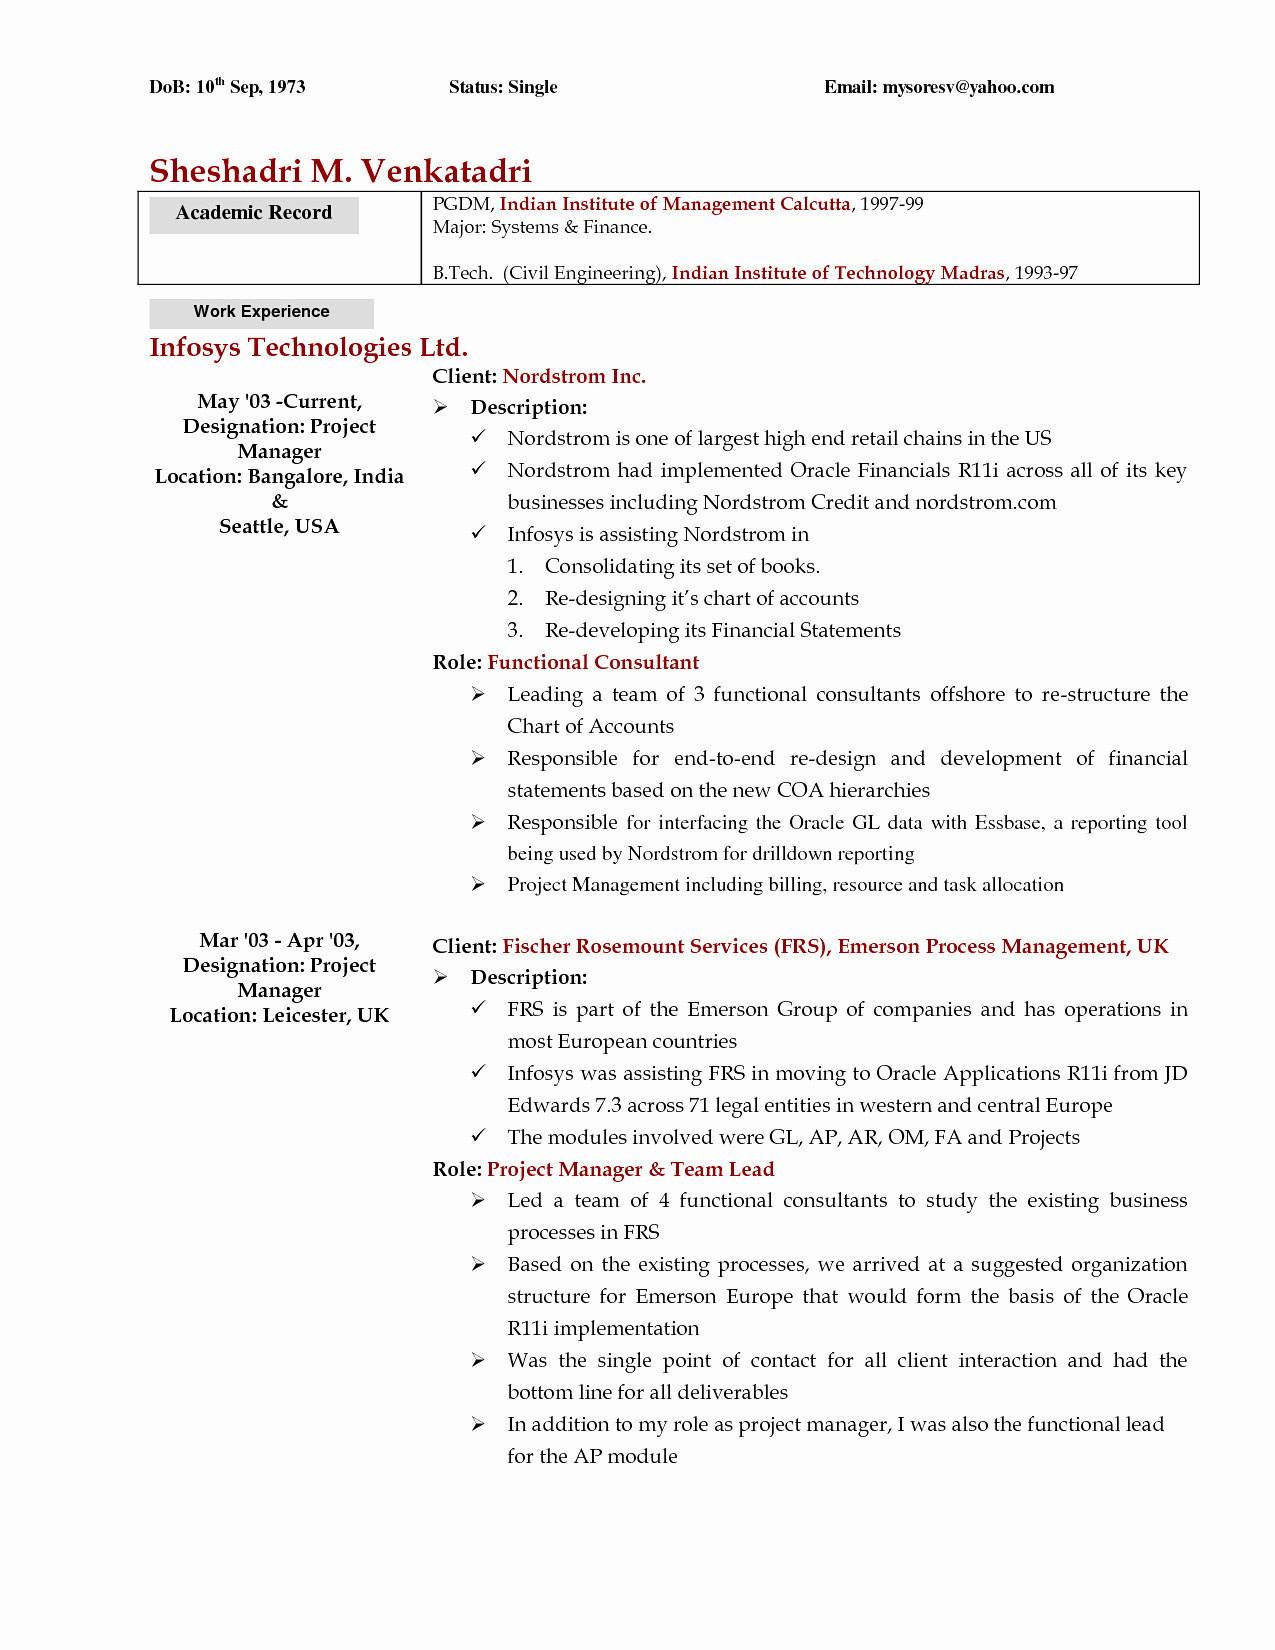 Financial Advisor Resume - Fresh Financial Advisor Resume Sample